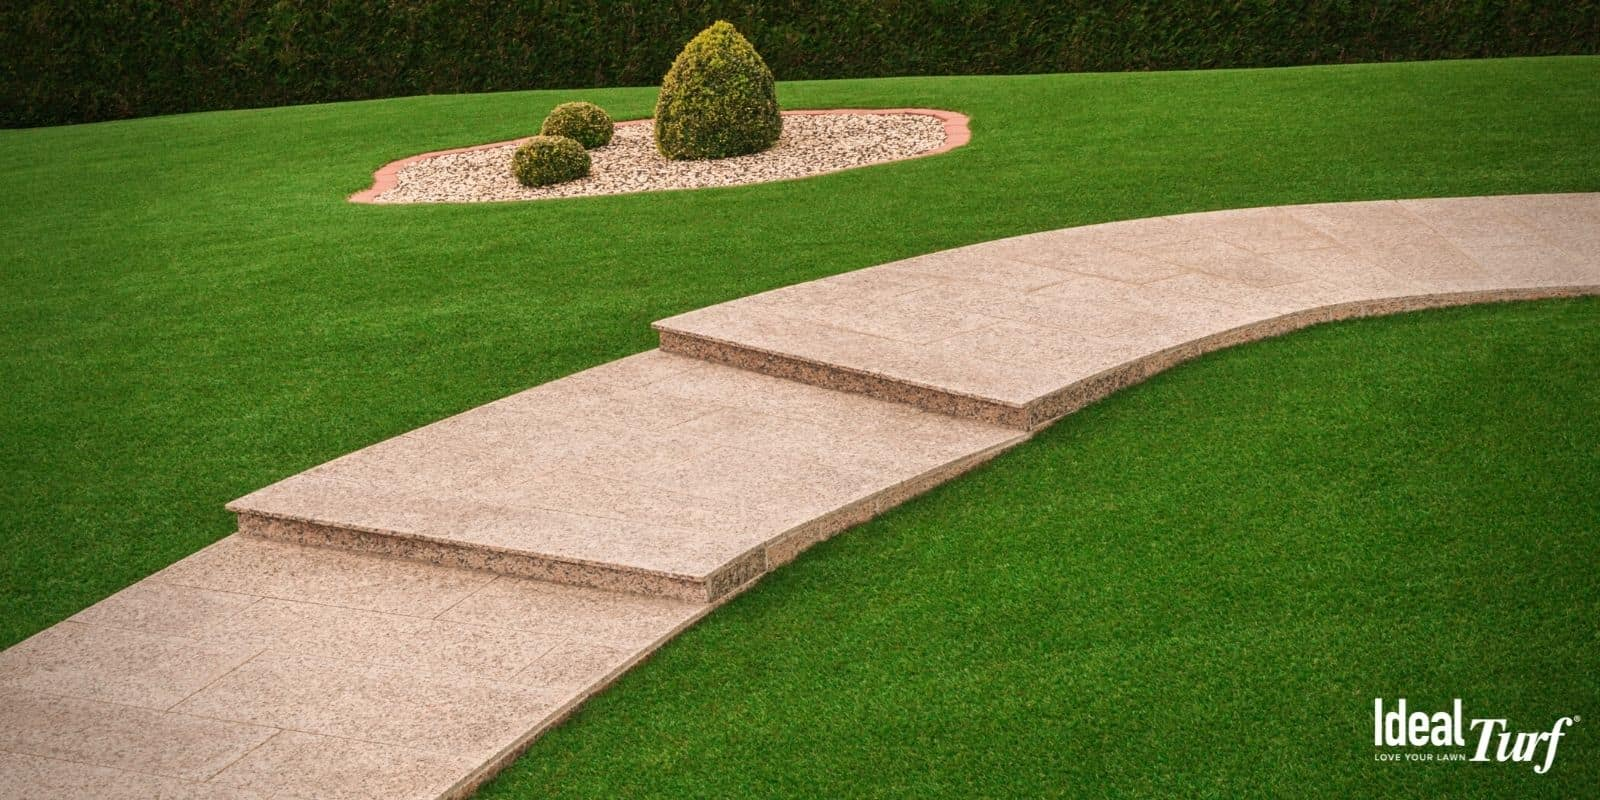 Walkway in residential lawn with artificial grass on either side